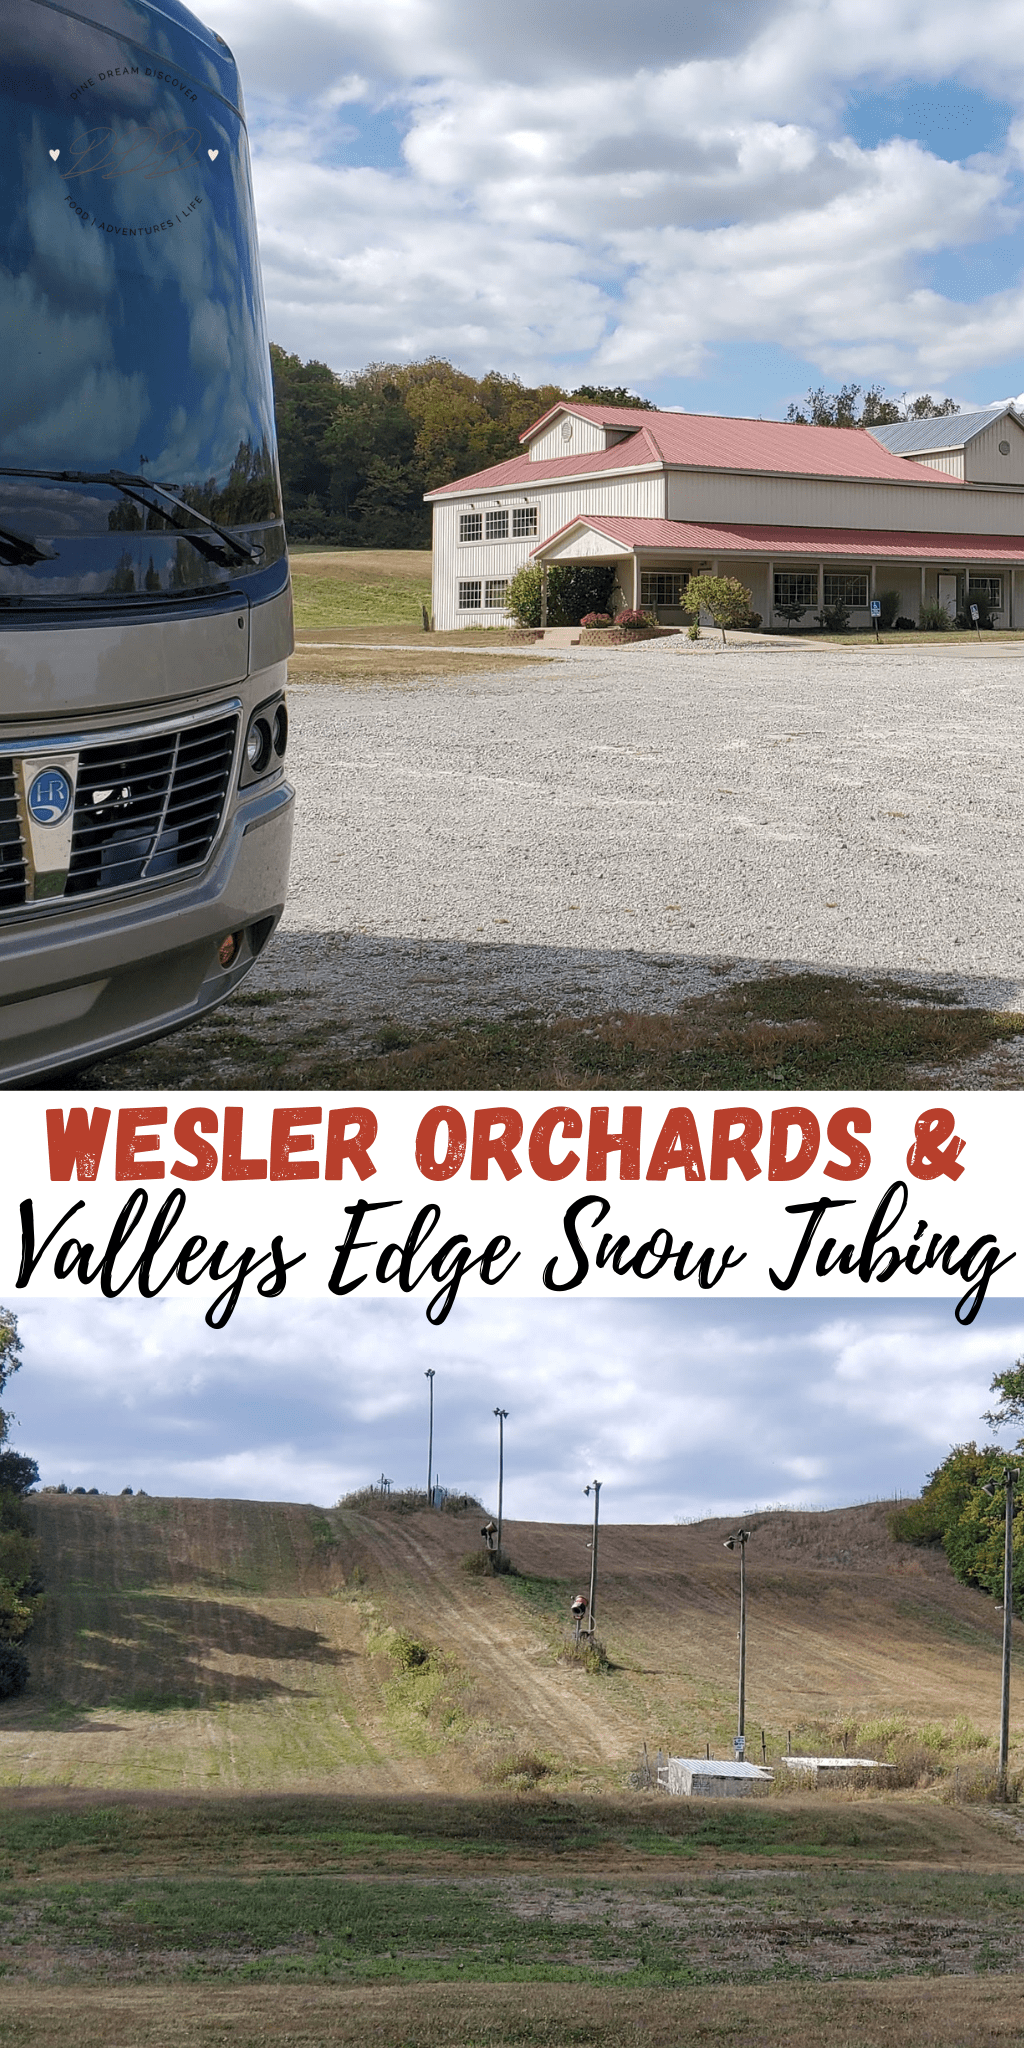 Valleys Edge Snow Tubing - Wesler Orchards